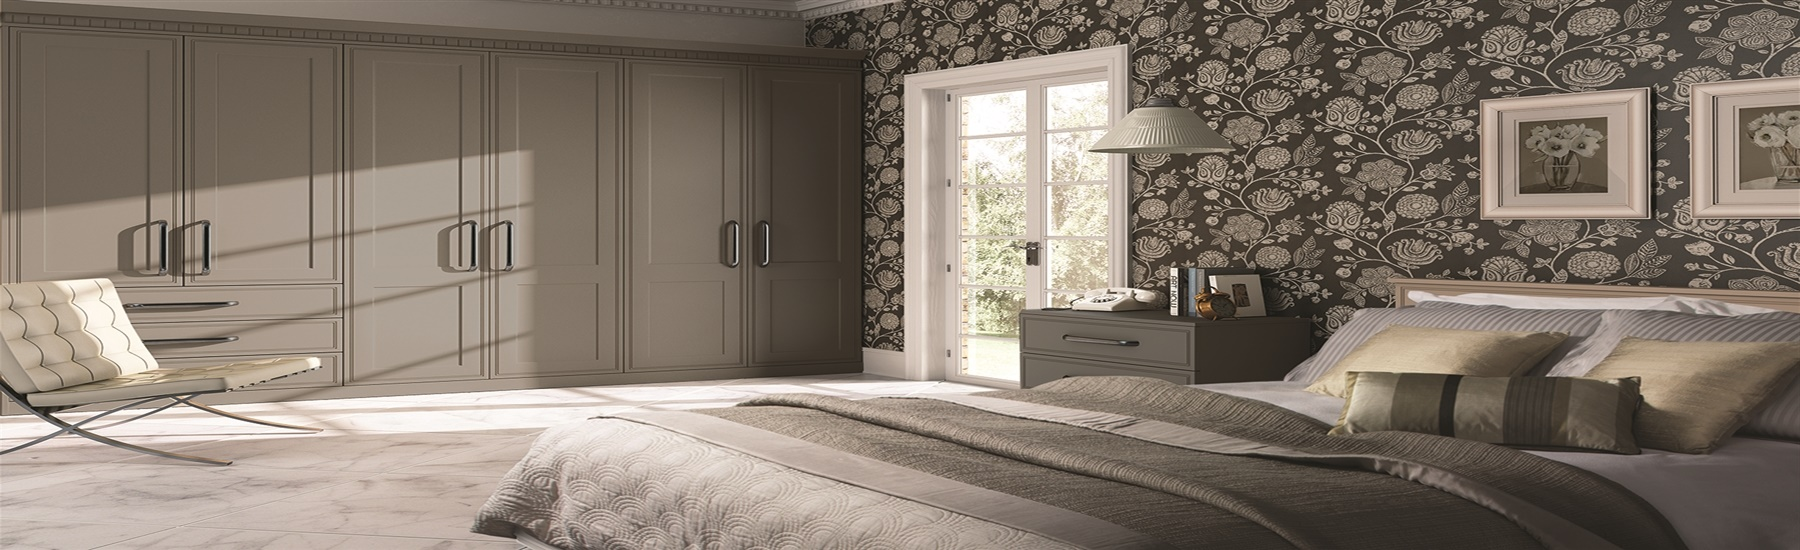 tullymore-wardrobe-door-bedroom